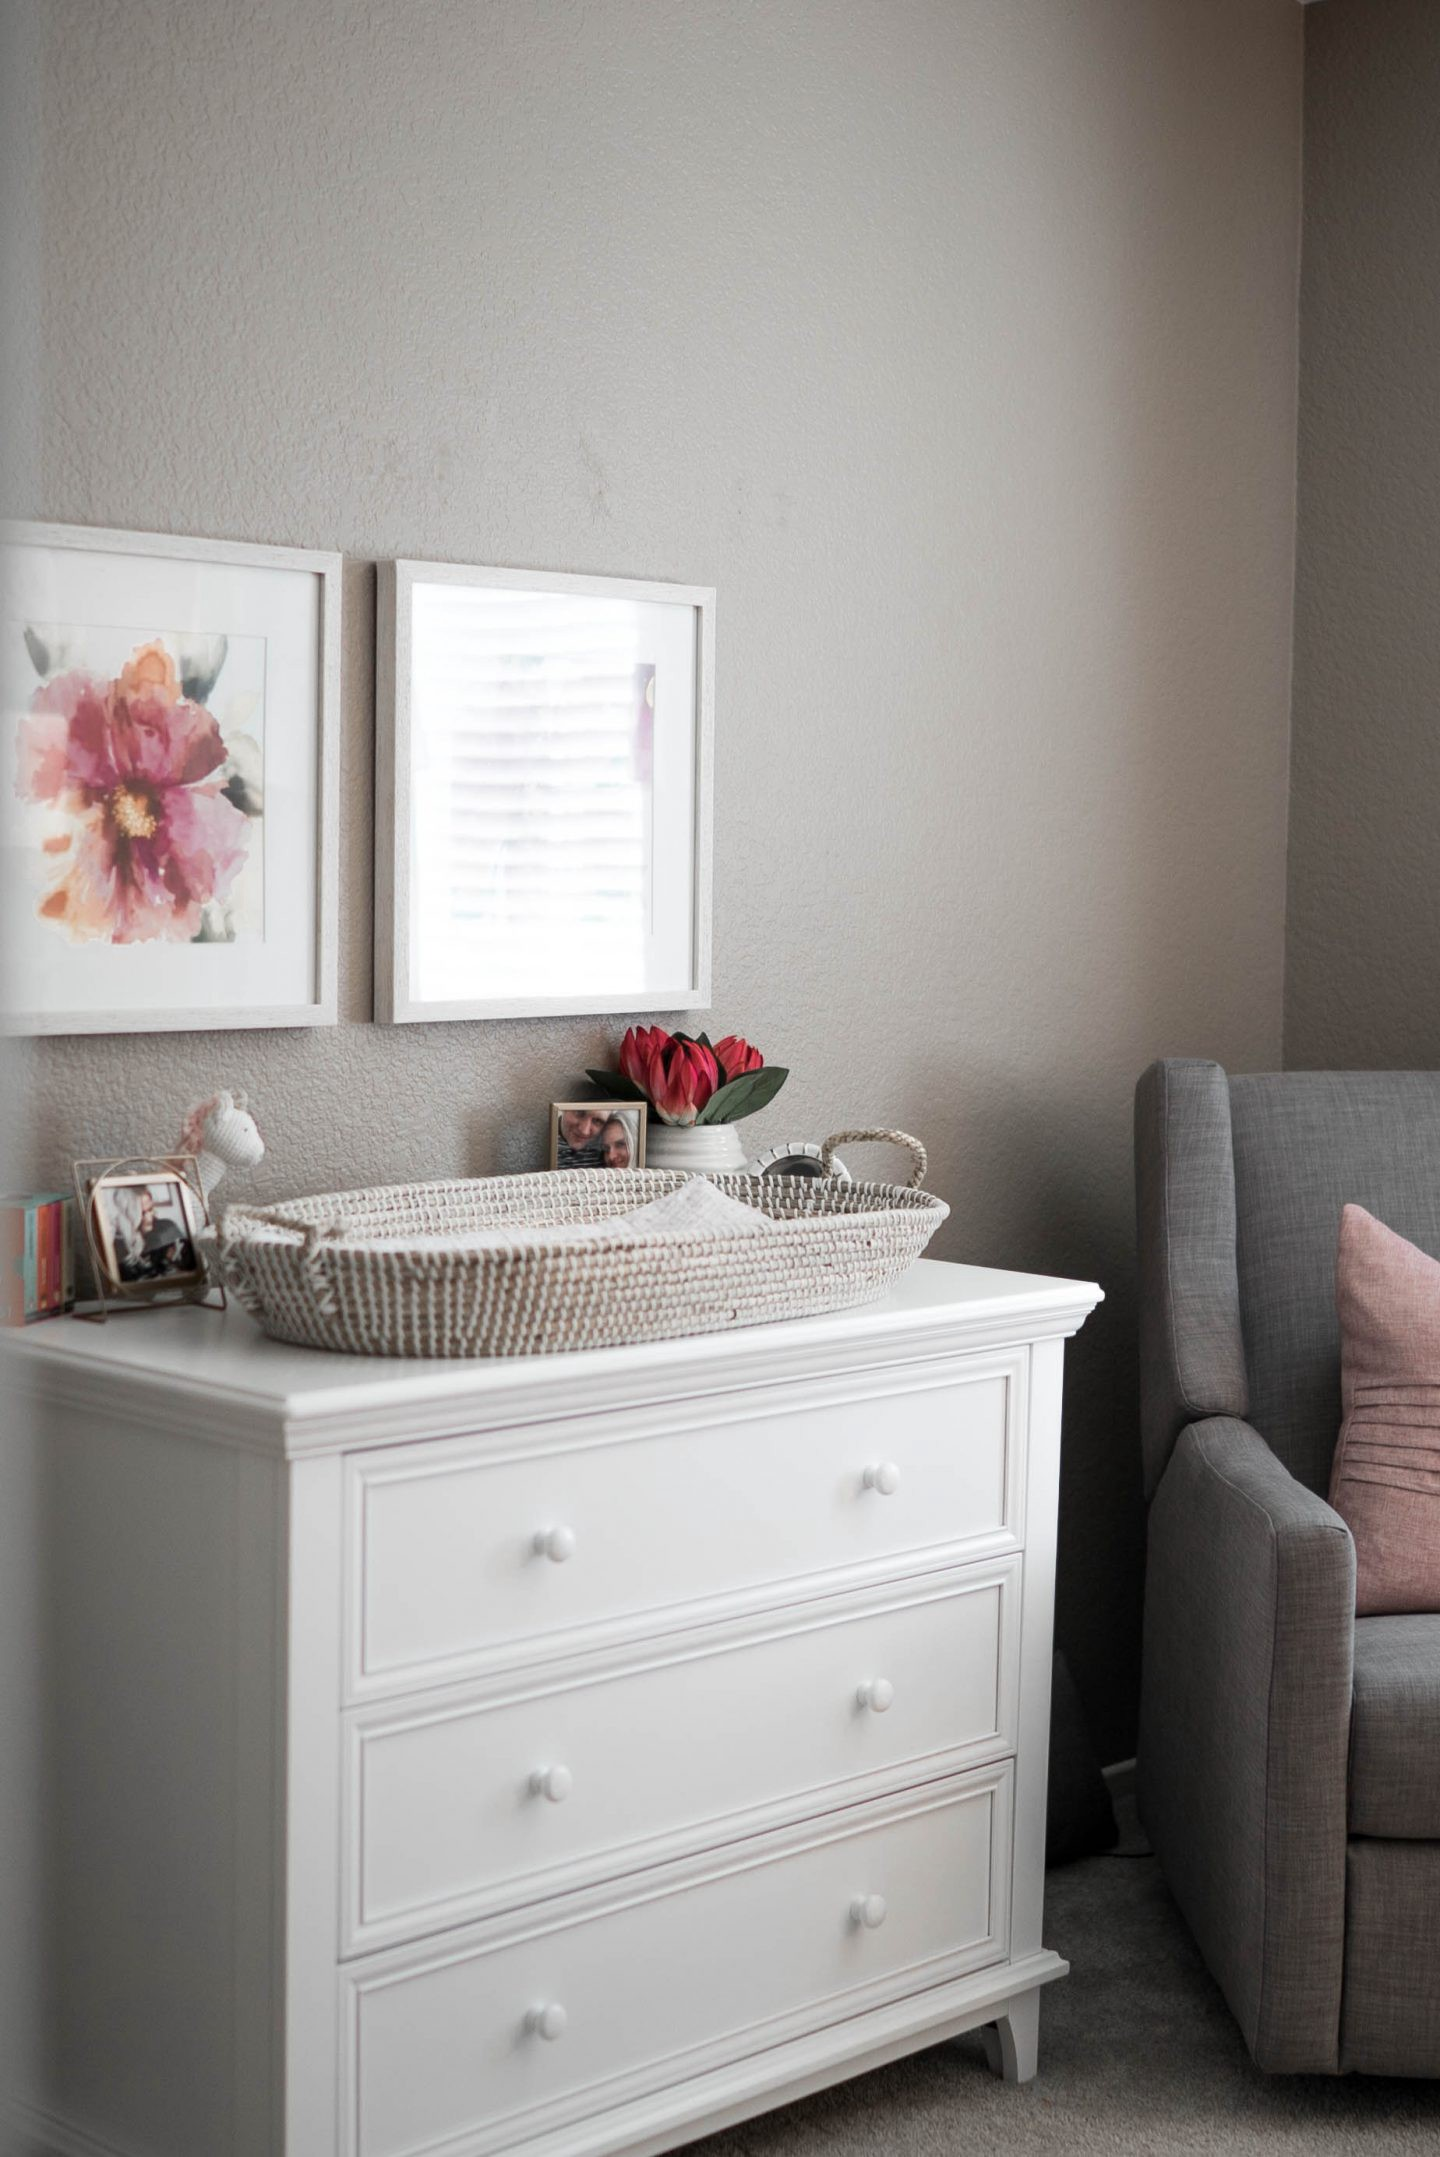 Nina's Baby Girl Nursery featured by popular Orange County lifestyle blogger, Dress Me Blonde